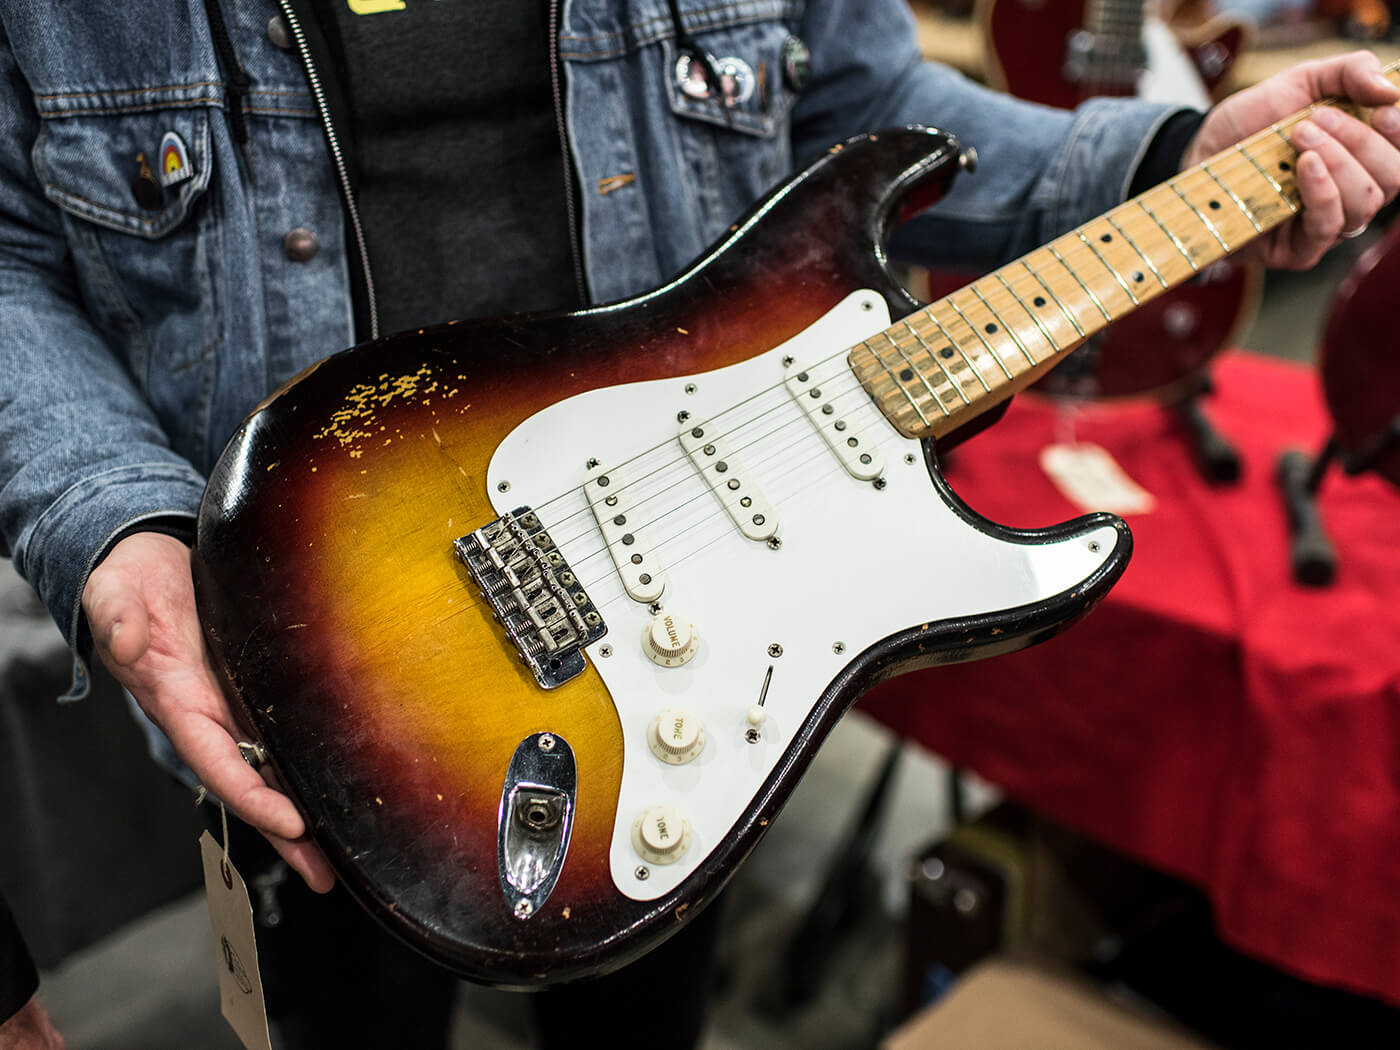 1958 Stratocaster in original three-tone sunburst